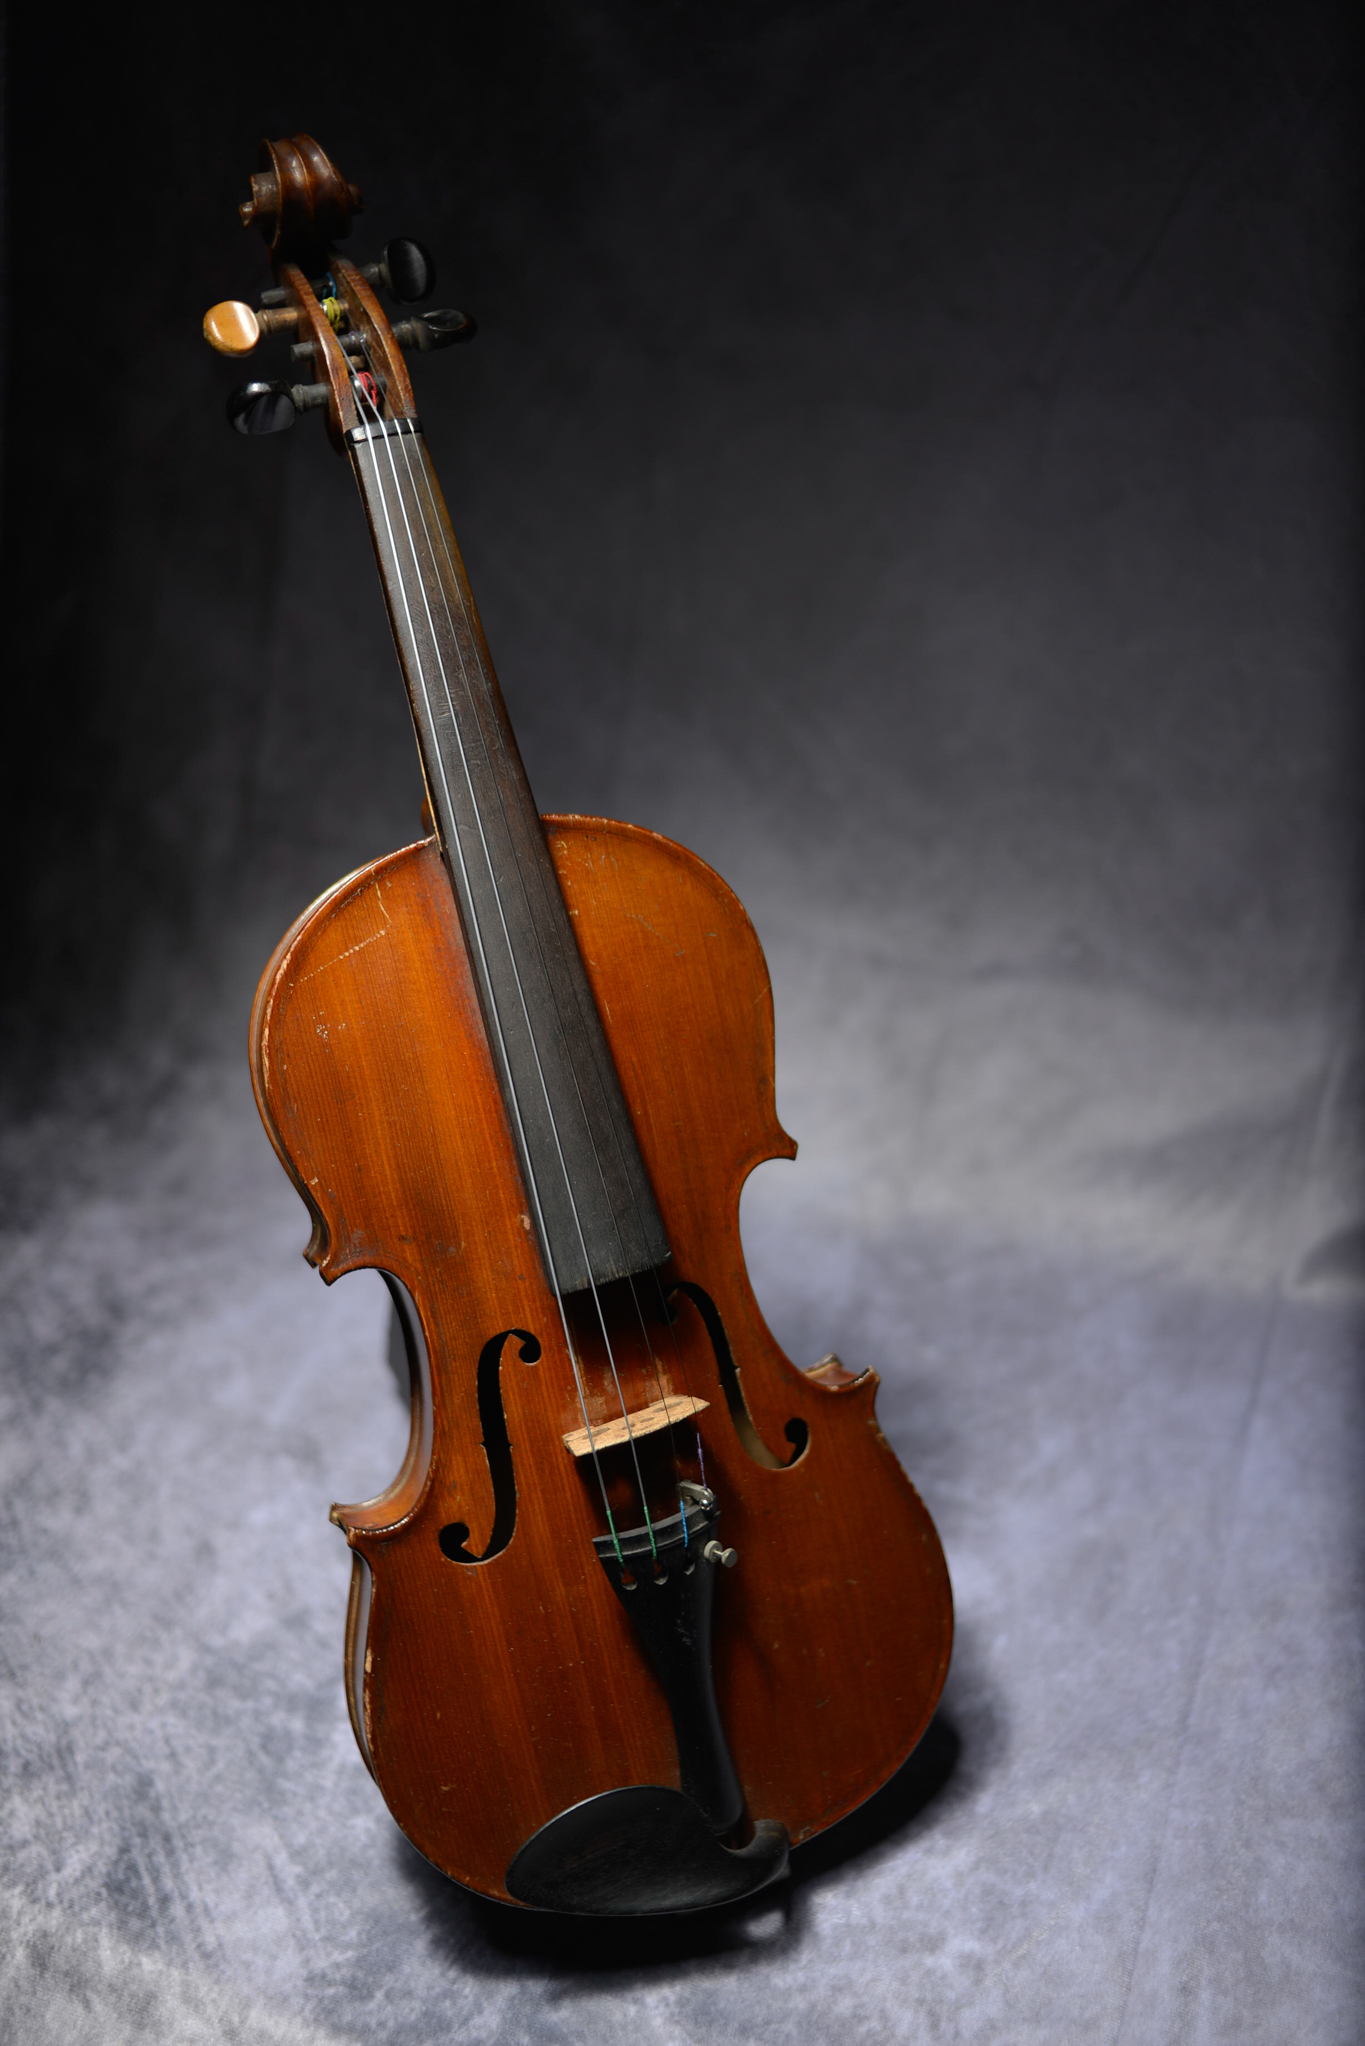 Lot 11 - Old Violin One Piece Back With Two Bows And Case.